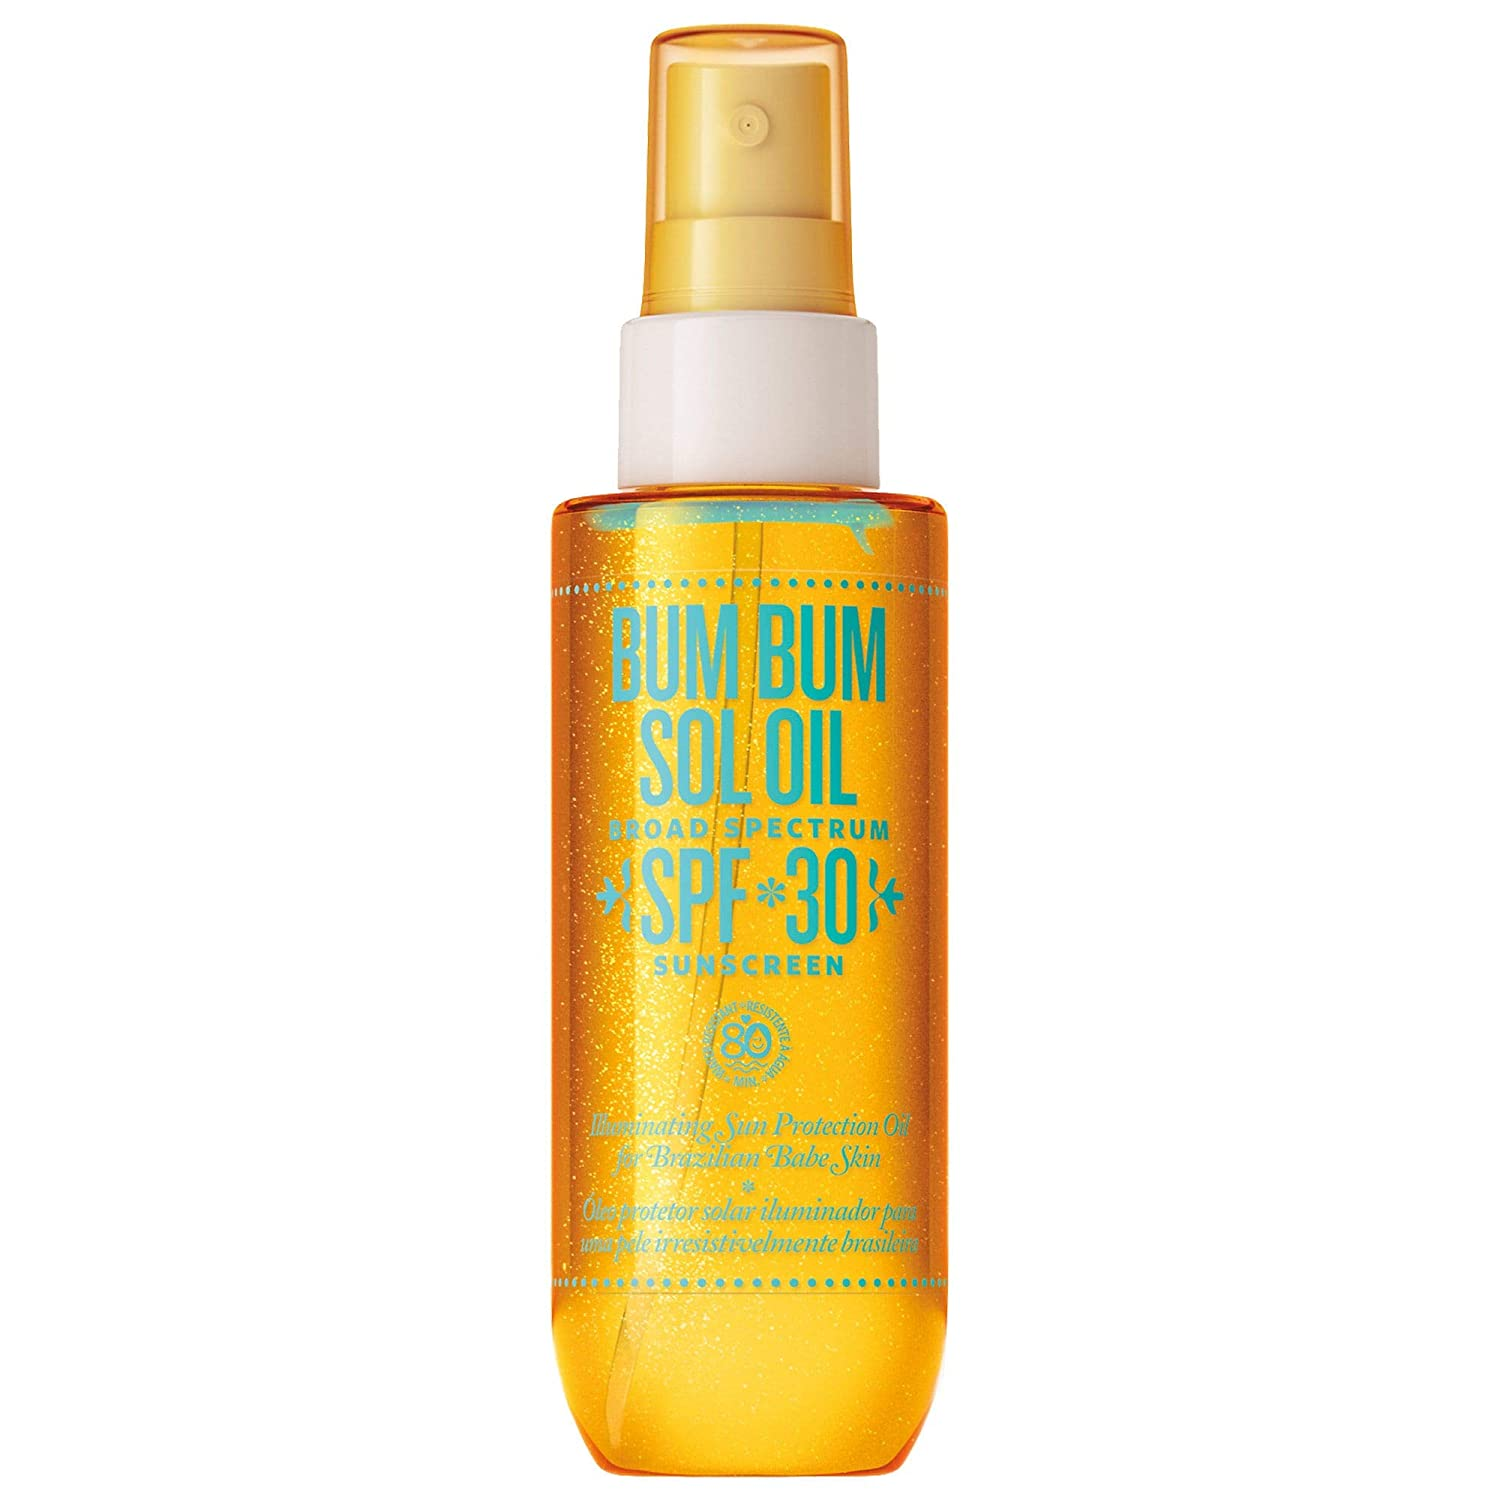 Bum Bum Sol Oil Sunscreen Broad Spectrum SPF 30, 3 Fl. Oz! Illuminating Sun Protection Oil for Brazilian Babe Skin! Nourish, Moisturize, And a Luxurious Touch of Rio Radiance!